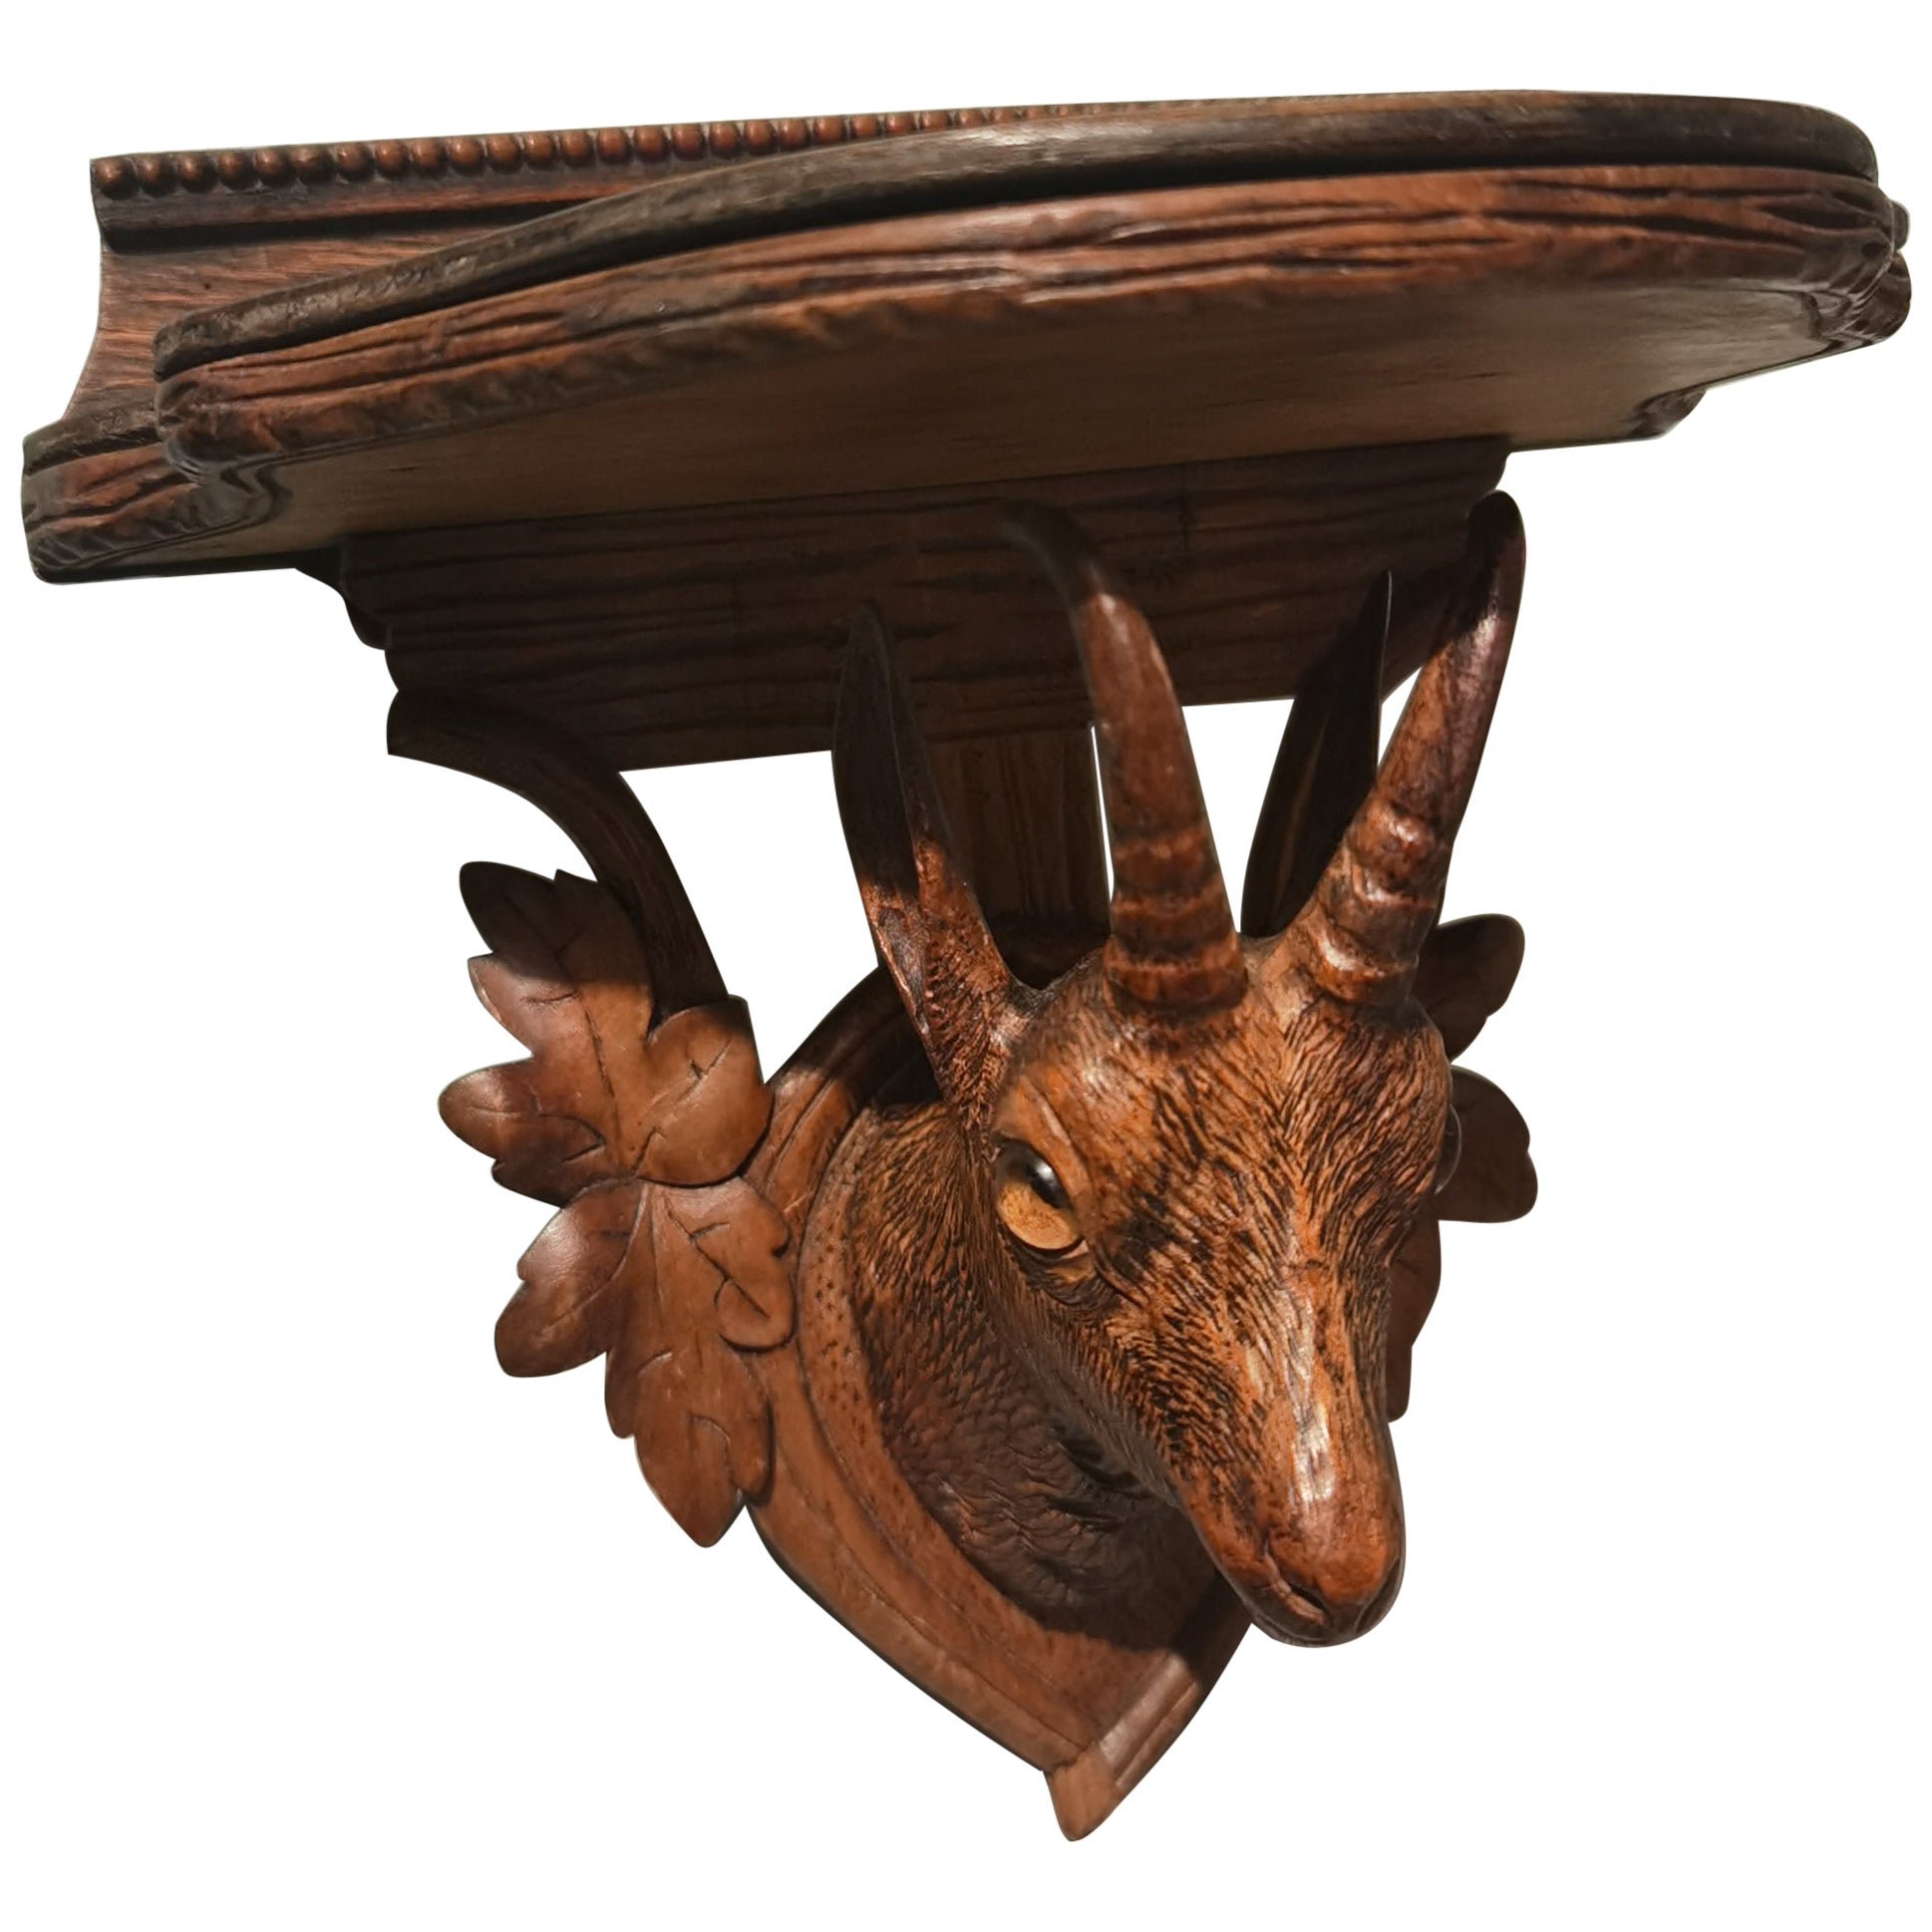 19th Century Black Forest Small Deer Head Throphy with Carved Wood Plaque